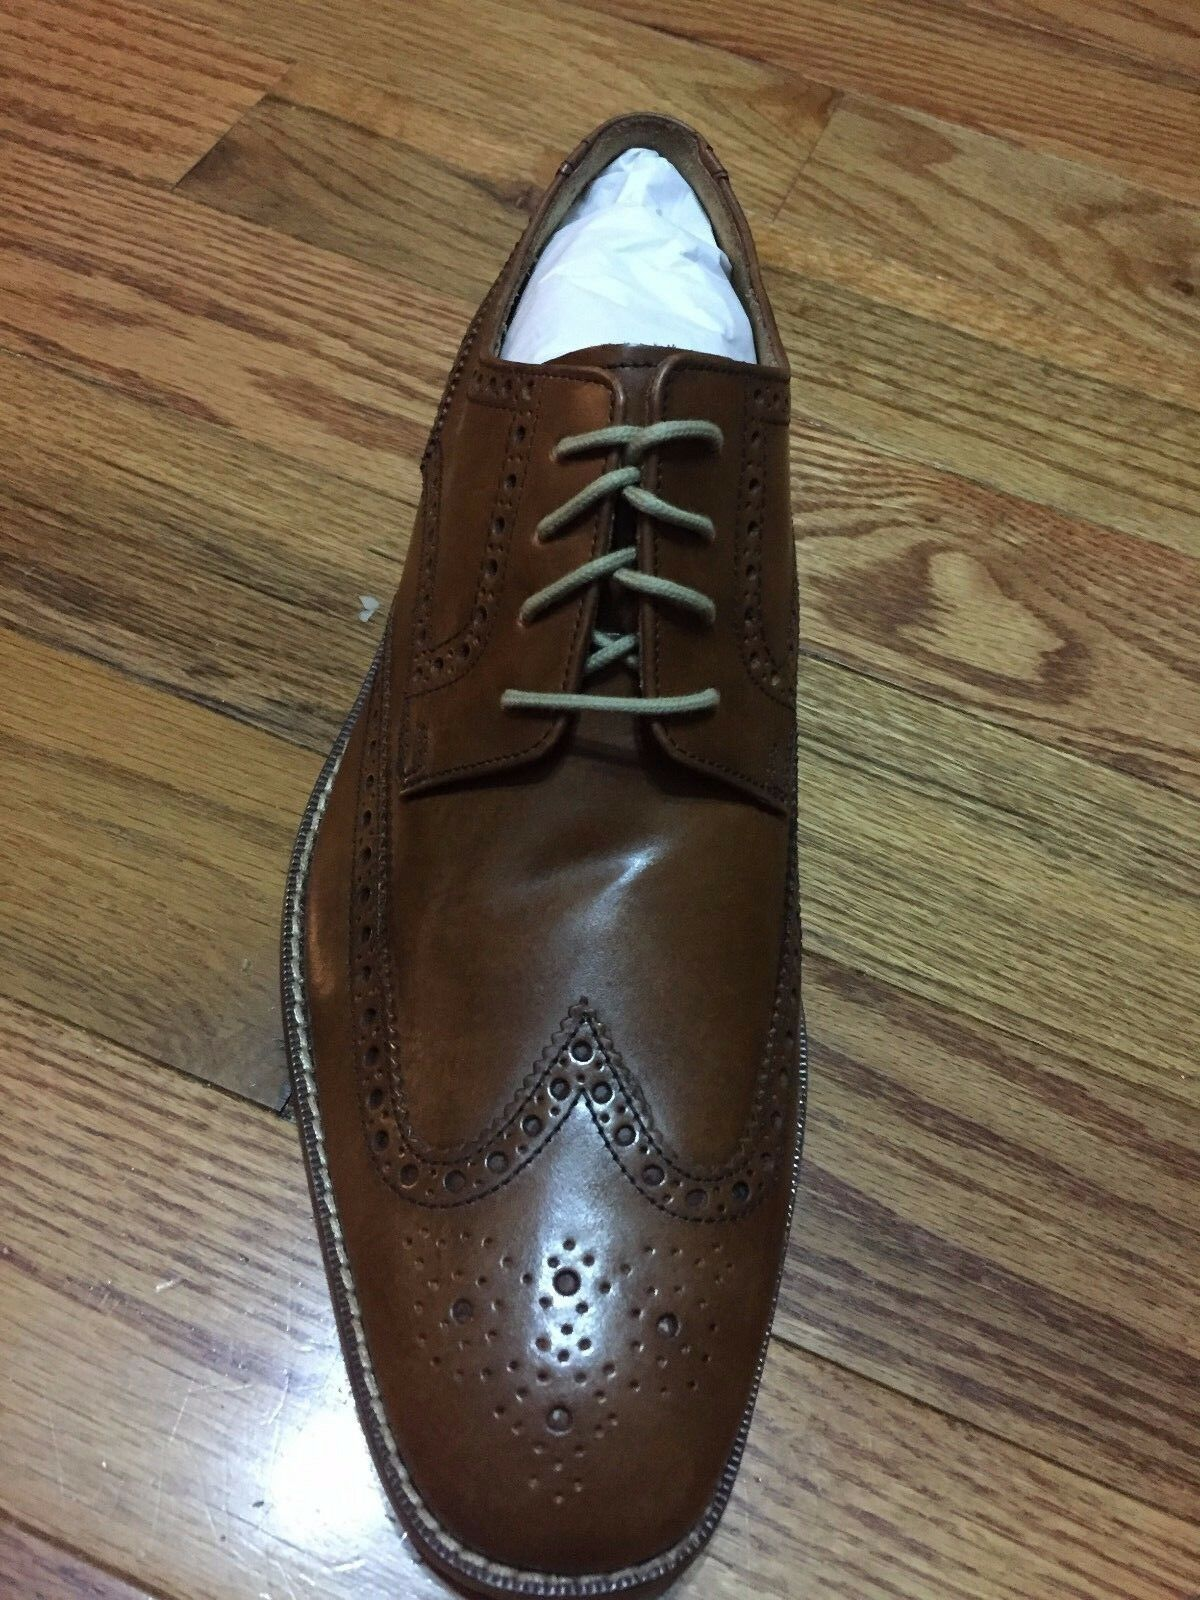 Cole Haan Giraldo wngtp II C13390 garancravate authentique